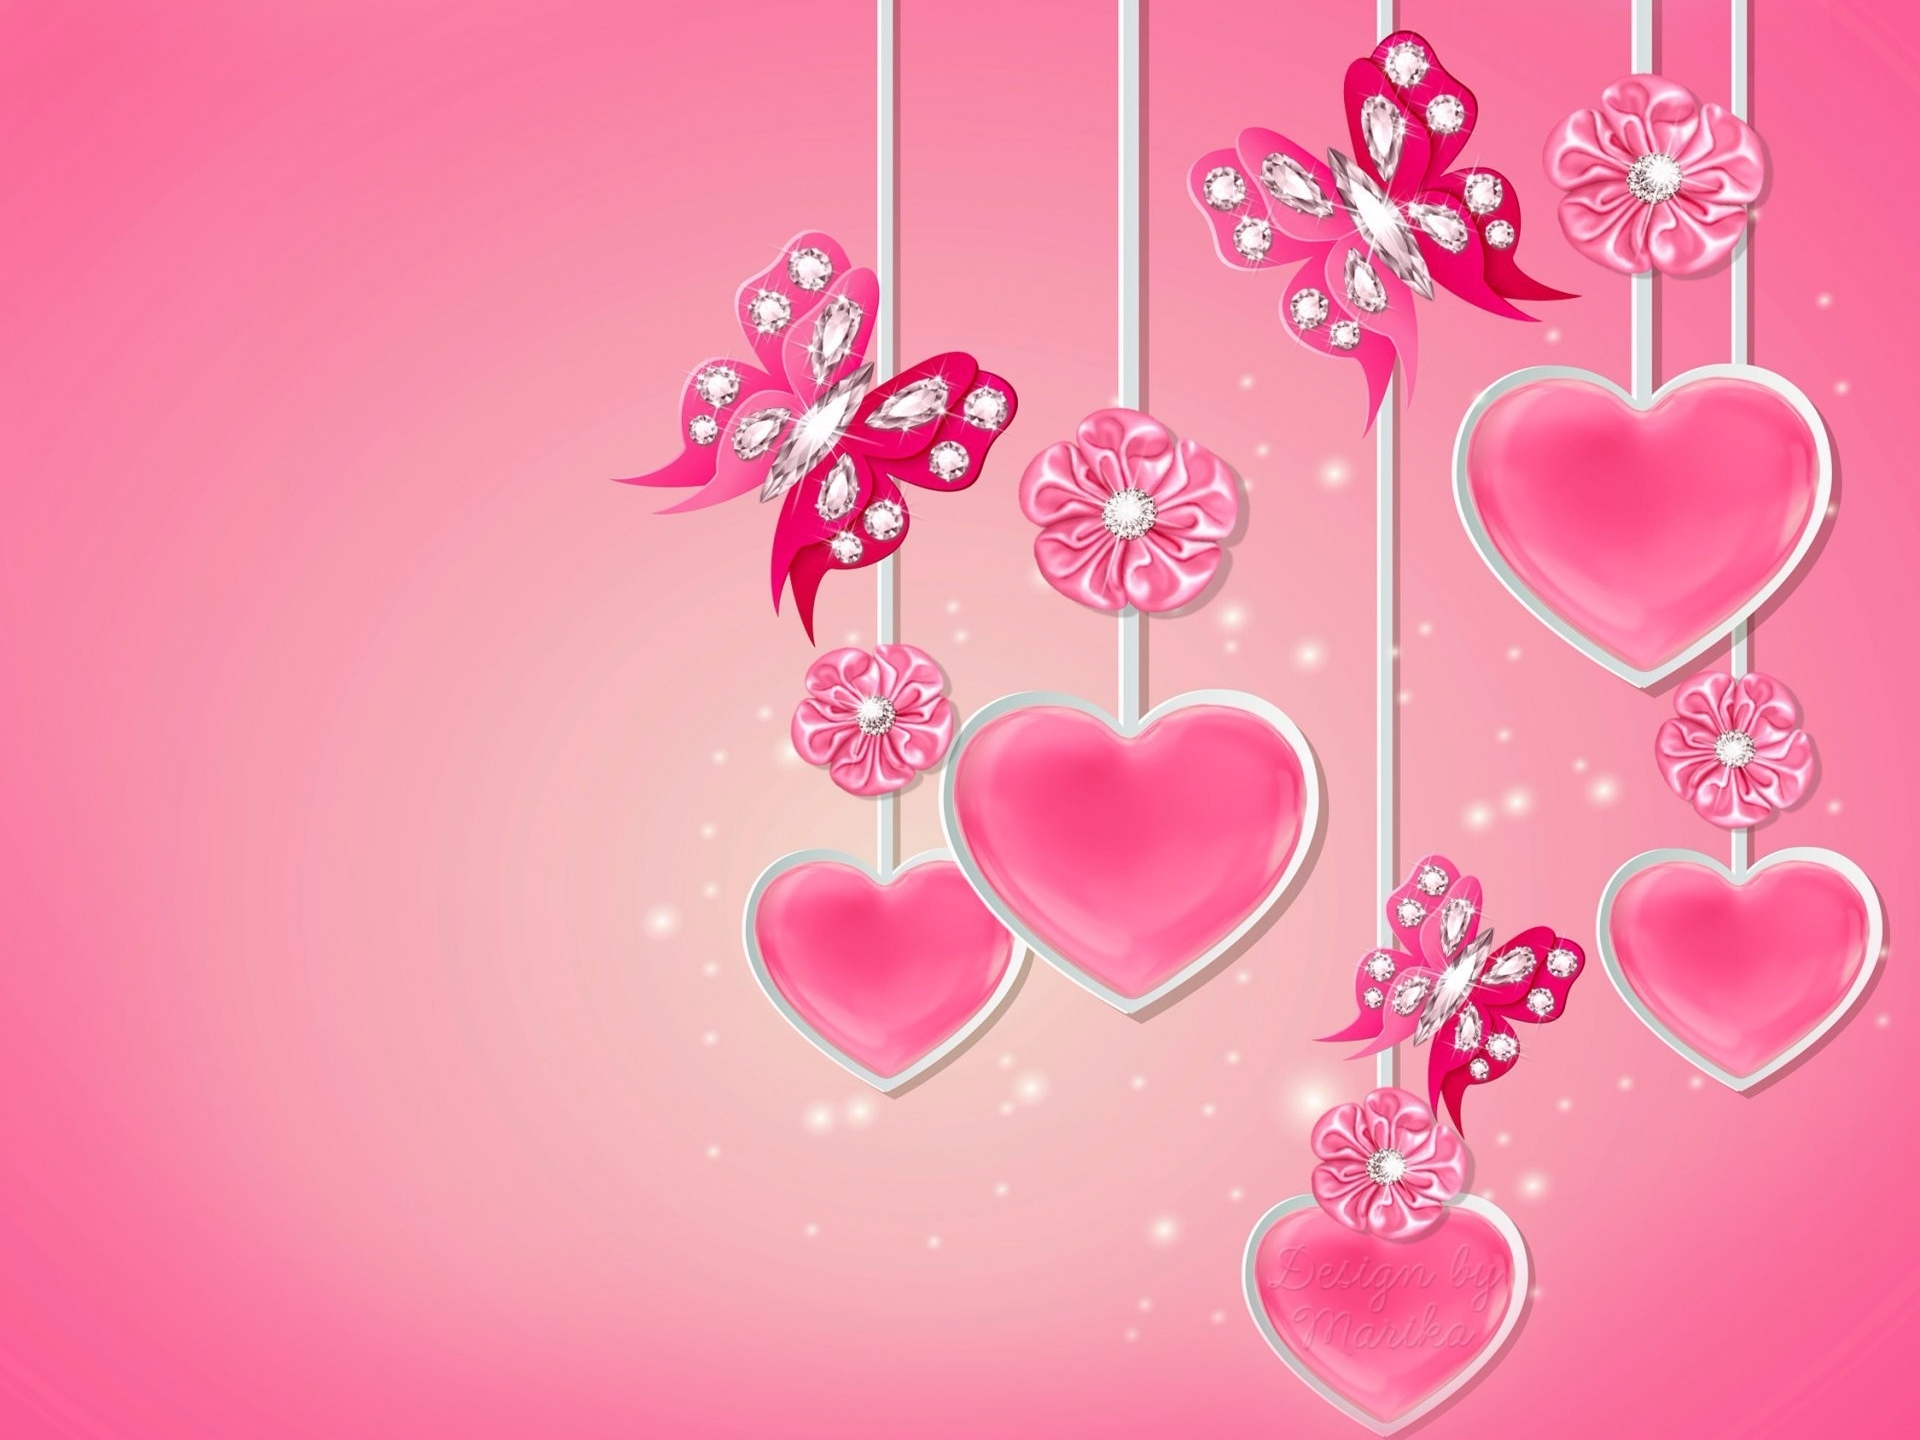 Pink hearts butterflys flowers wallpapers pink hearts butterflys image pink hearts butterflys flowers wallpapers and stock photos mightylinksfo